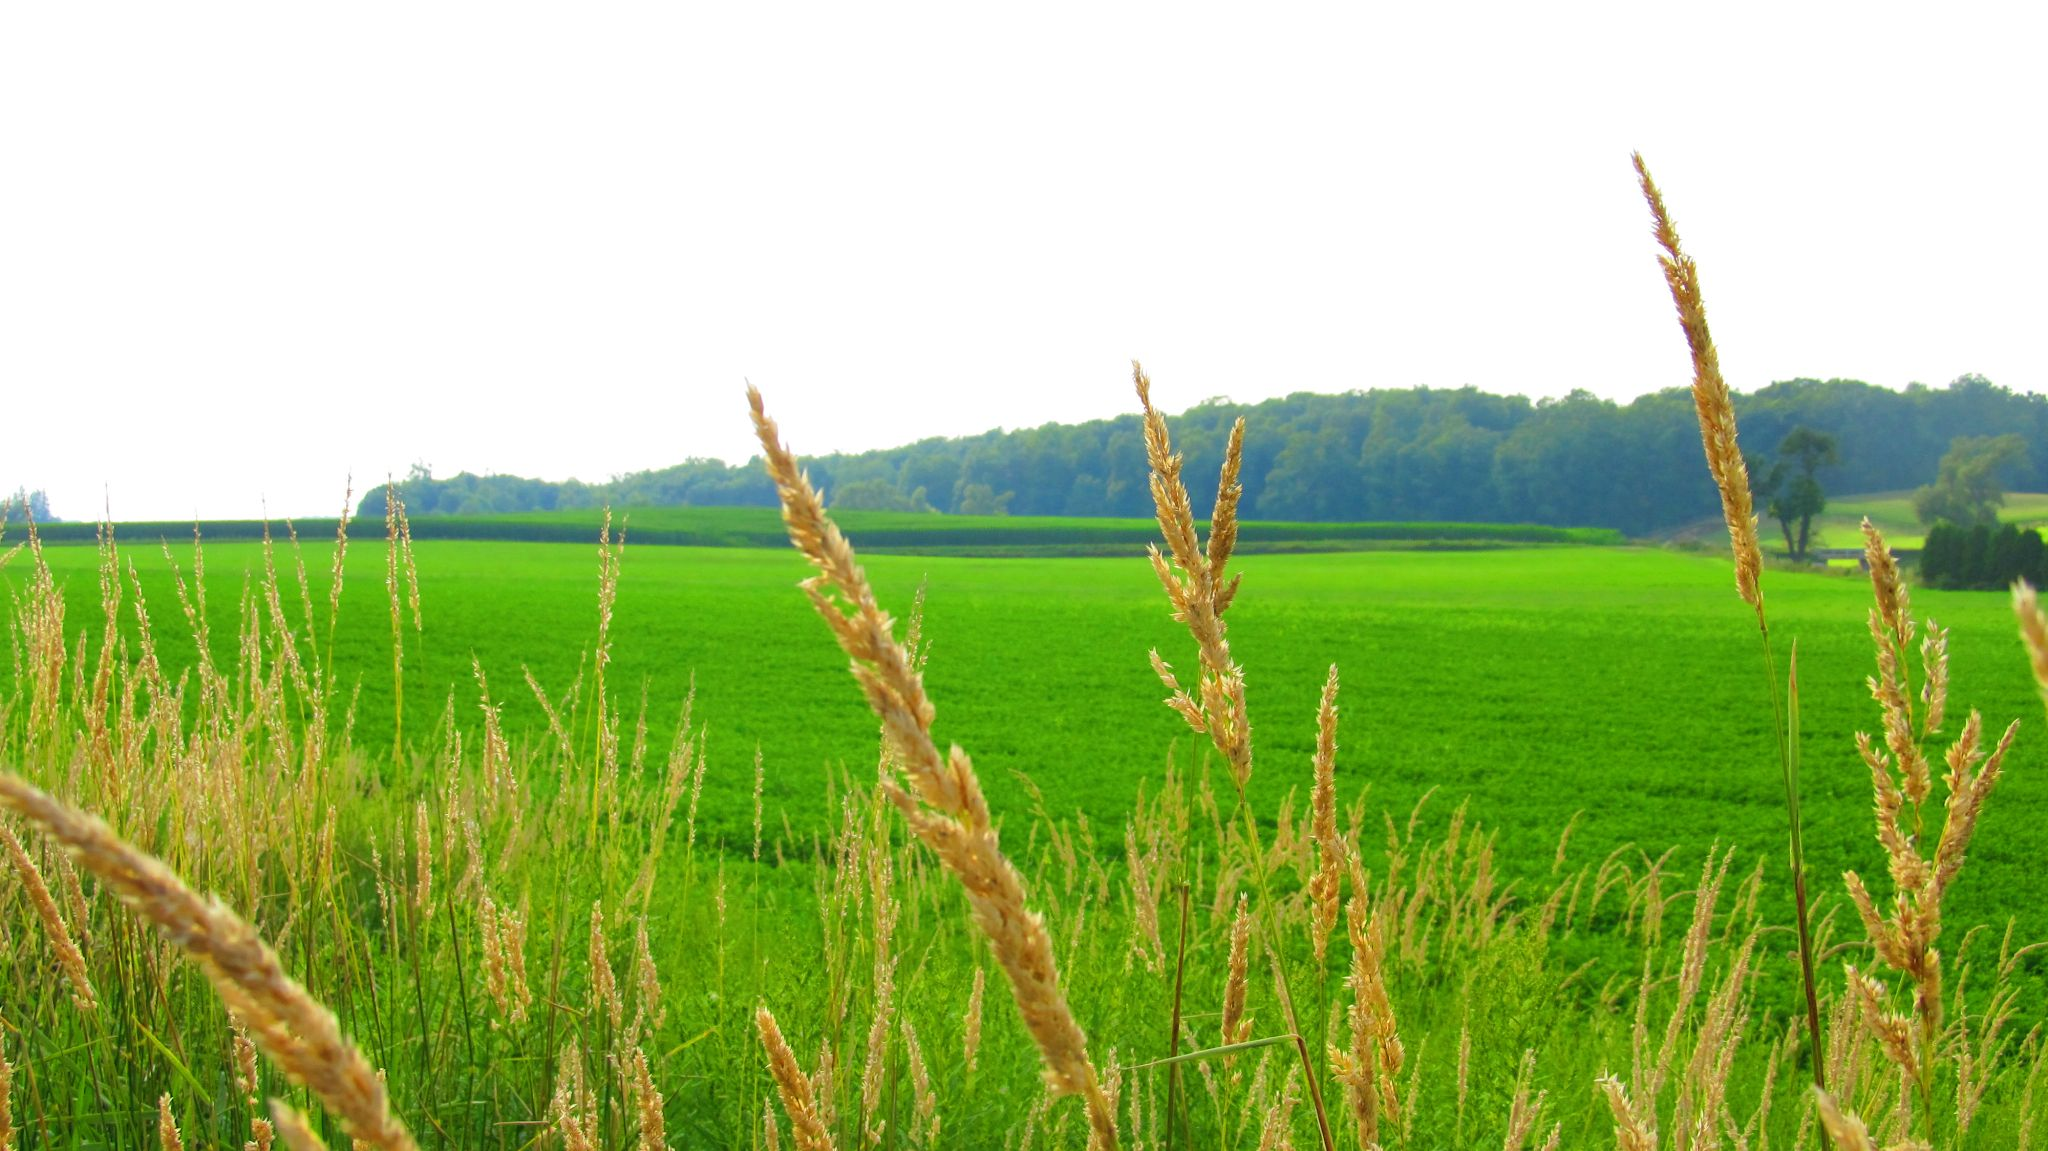 Green Field by simonp